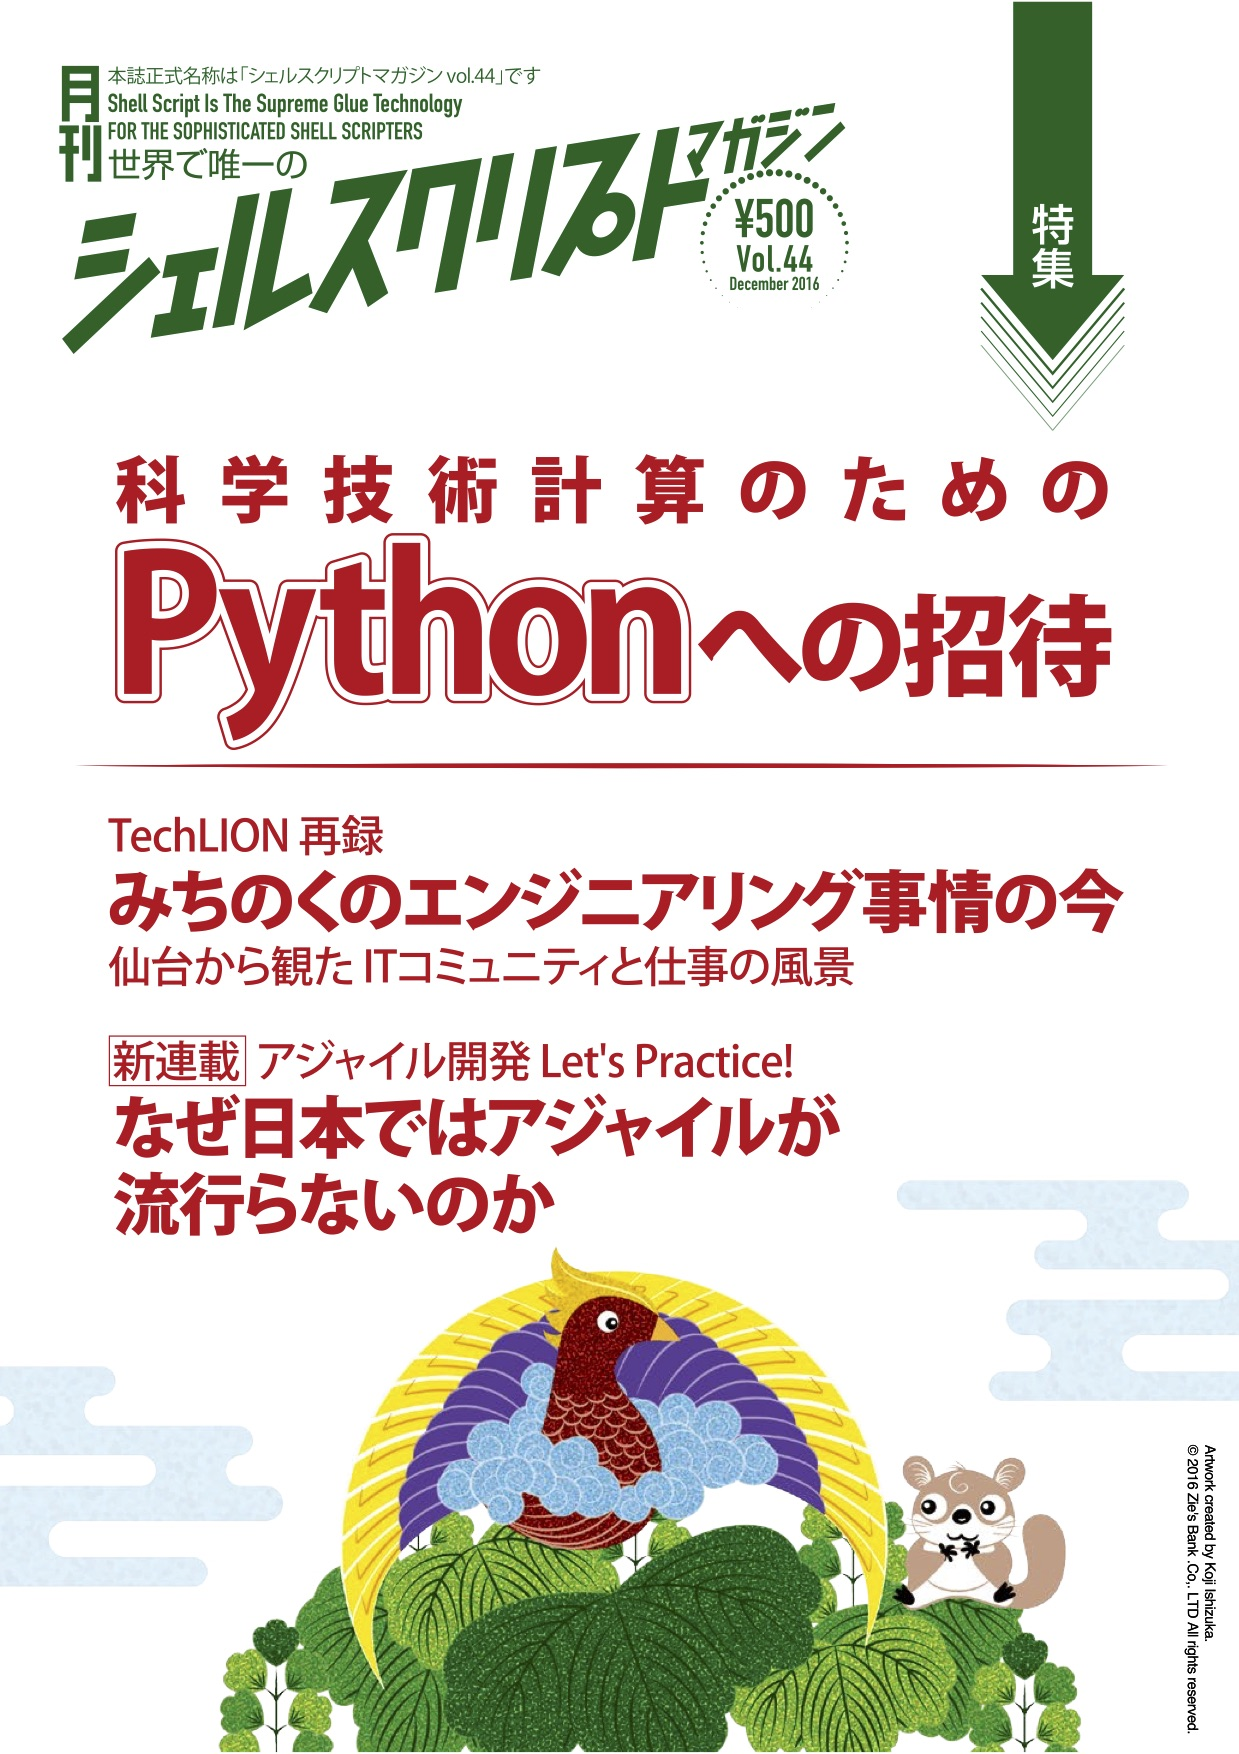 shellscriptmag_vol44